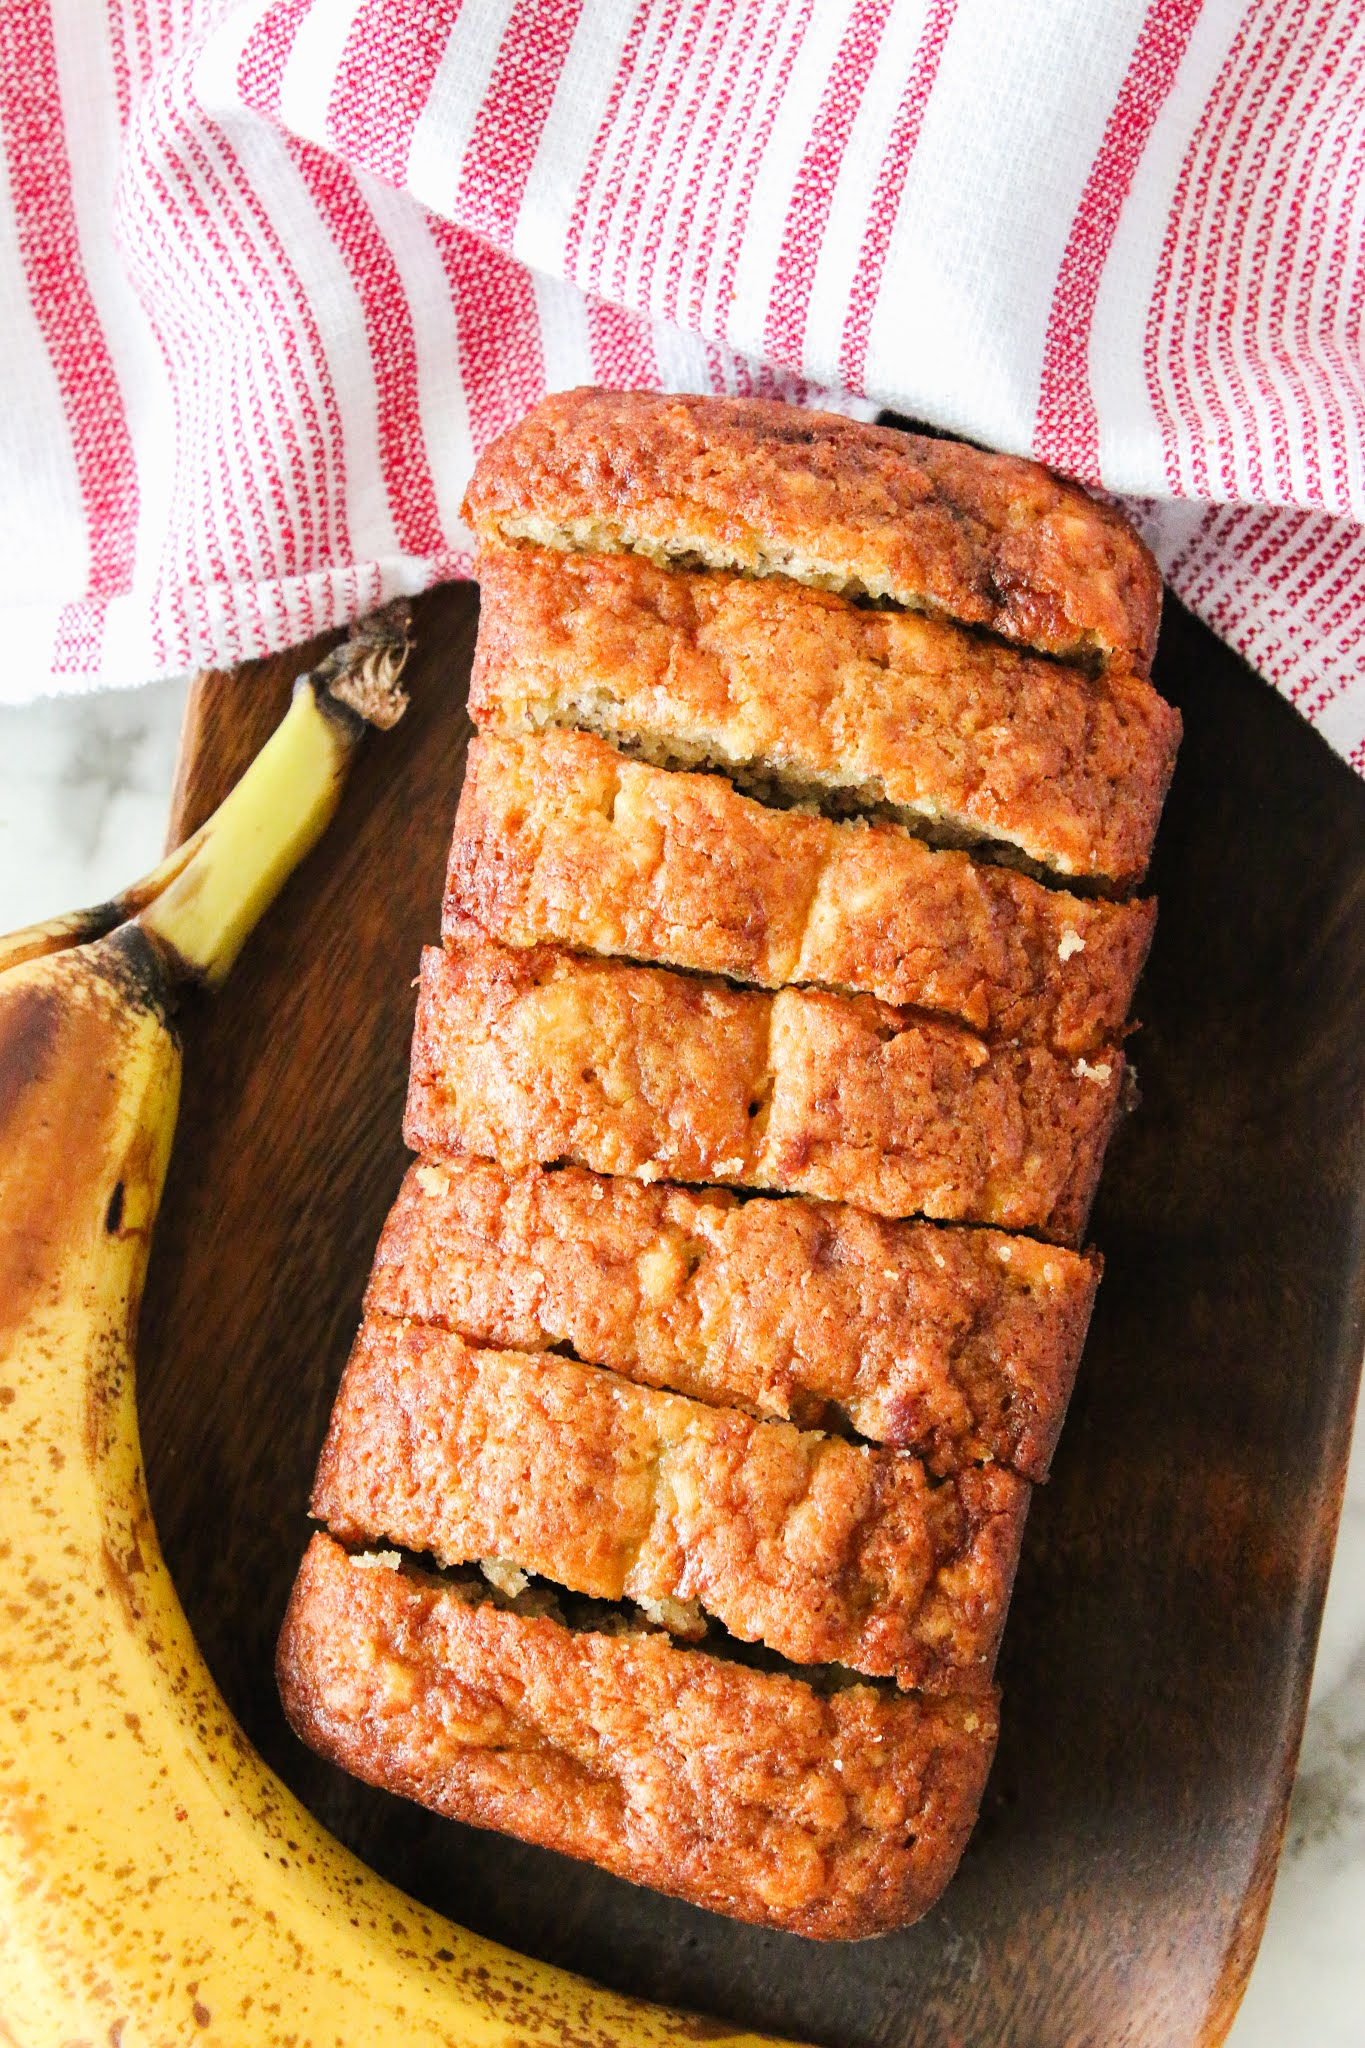 Mini loaf banana bread sliced on a wood platter with a red towel in the background